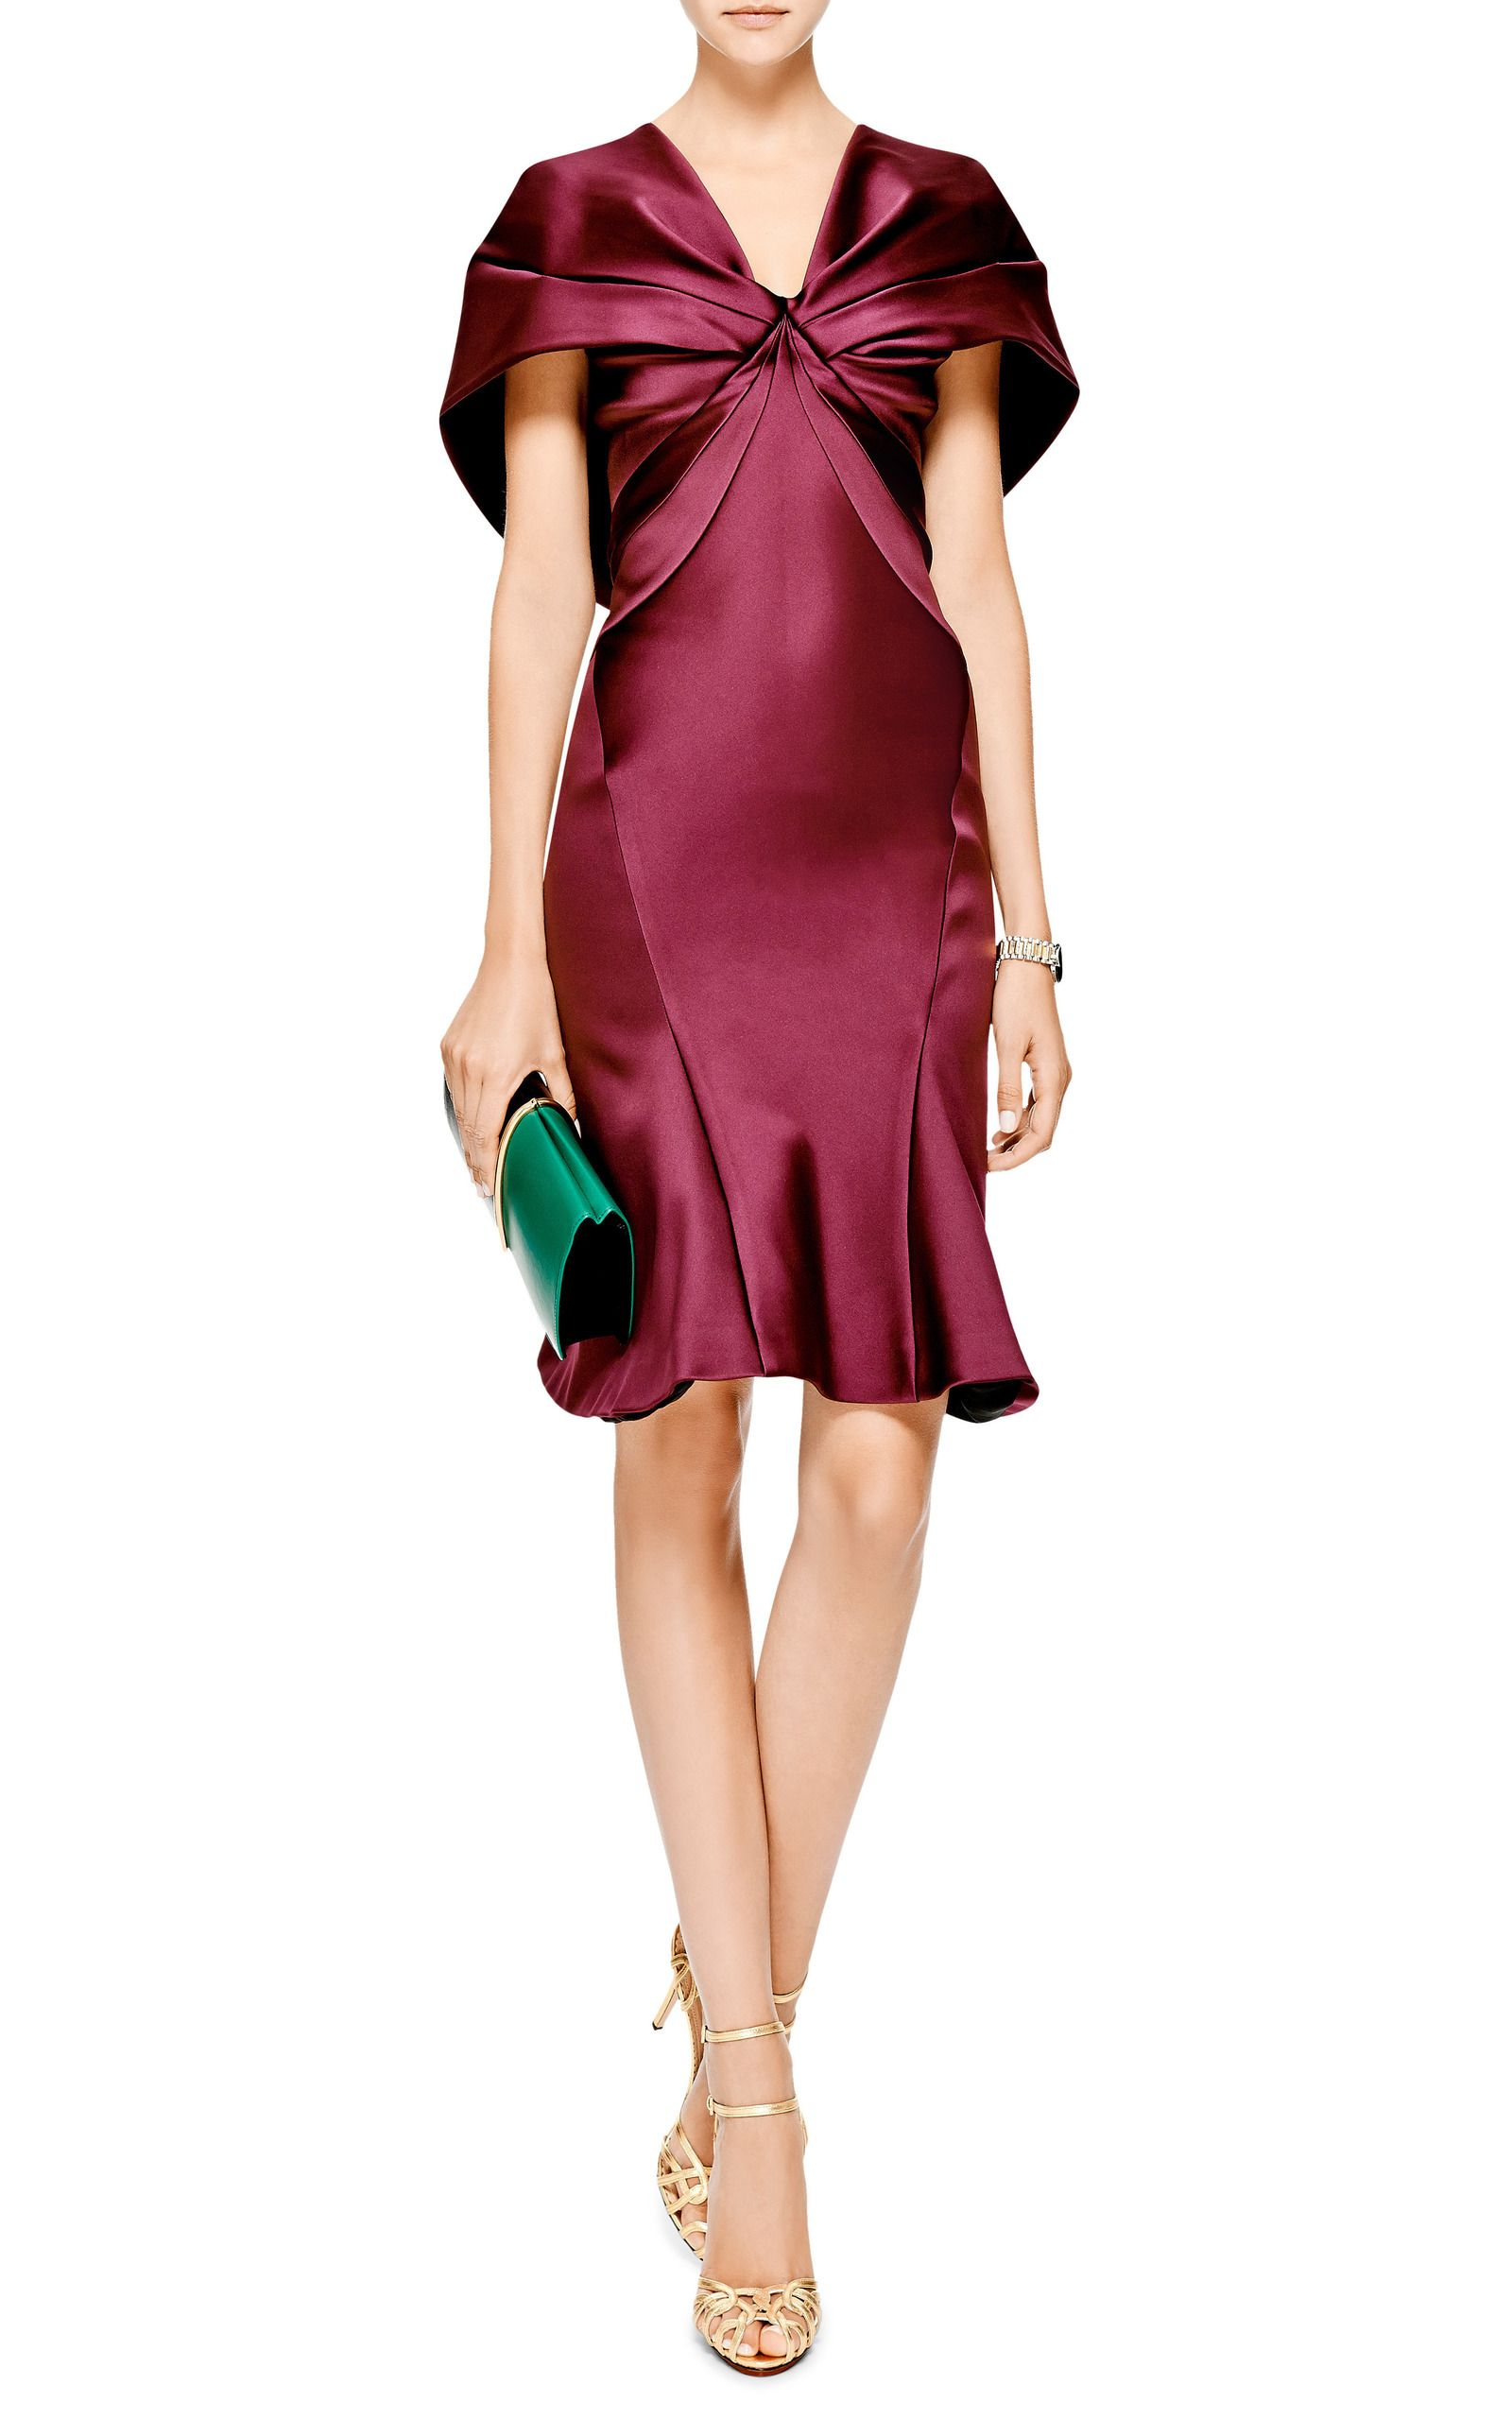 502c1e04151 Zac Posen · V Neck Dress · Click product to zoom Satin Dresses